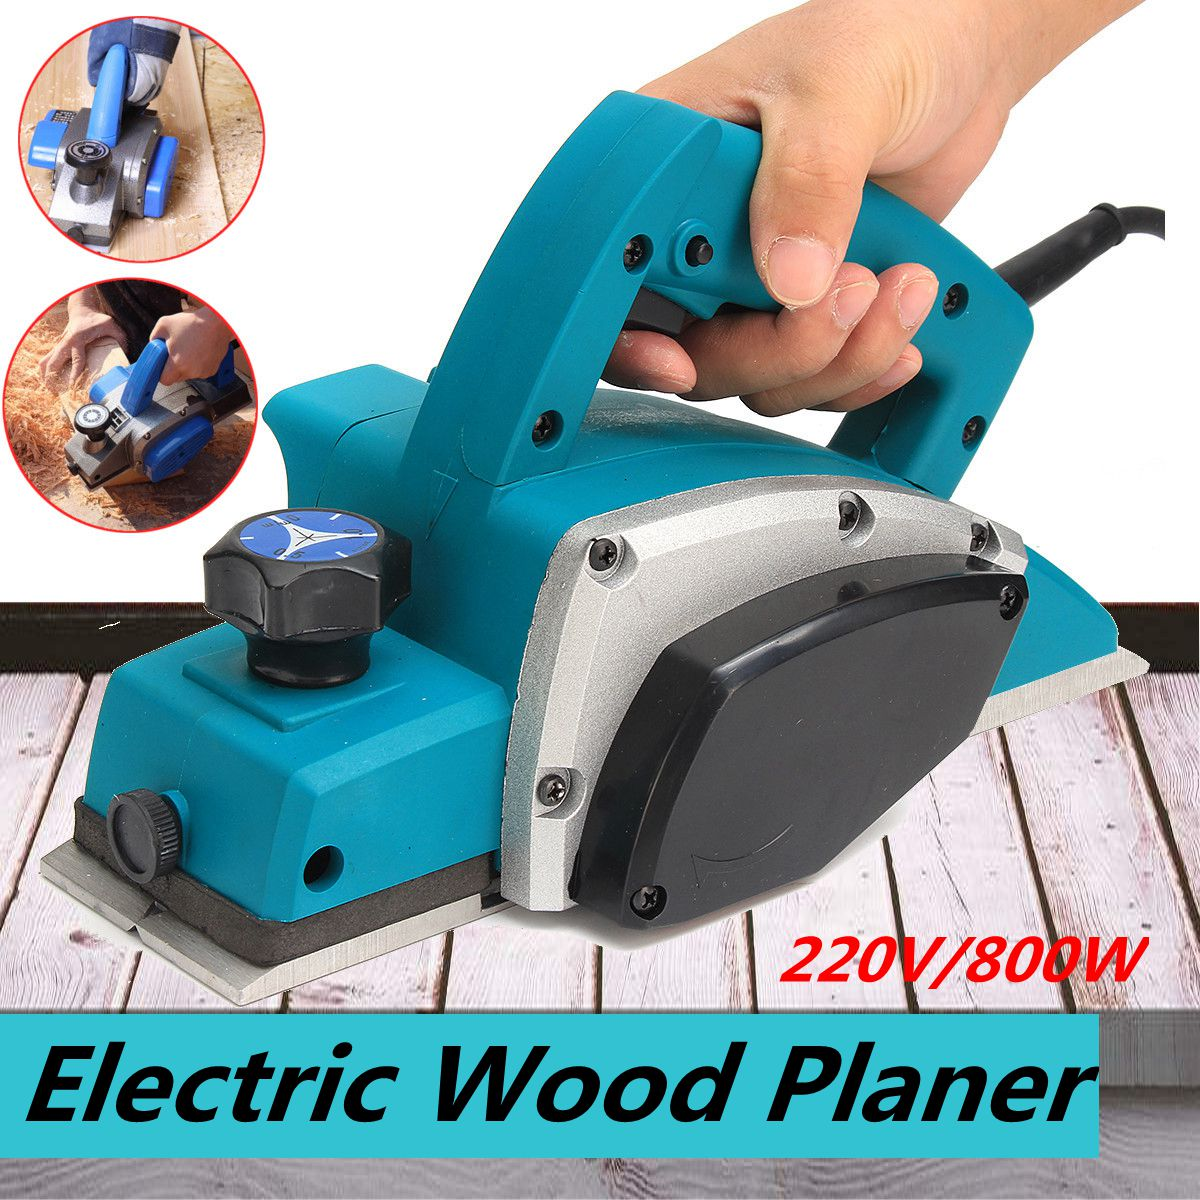 220V 800W Powerful Electric Wood Planer Door Plane Hand Held Woodworking Surface220V 800W Powerful Electric Wood Planer Door Plane Hand Held Woodworking Surface